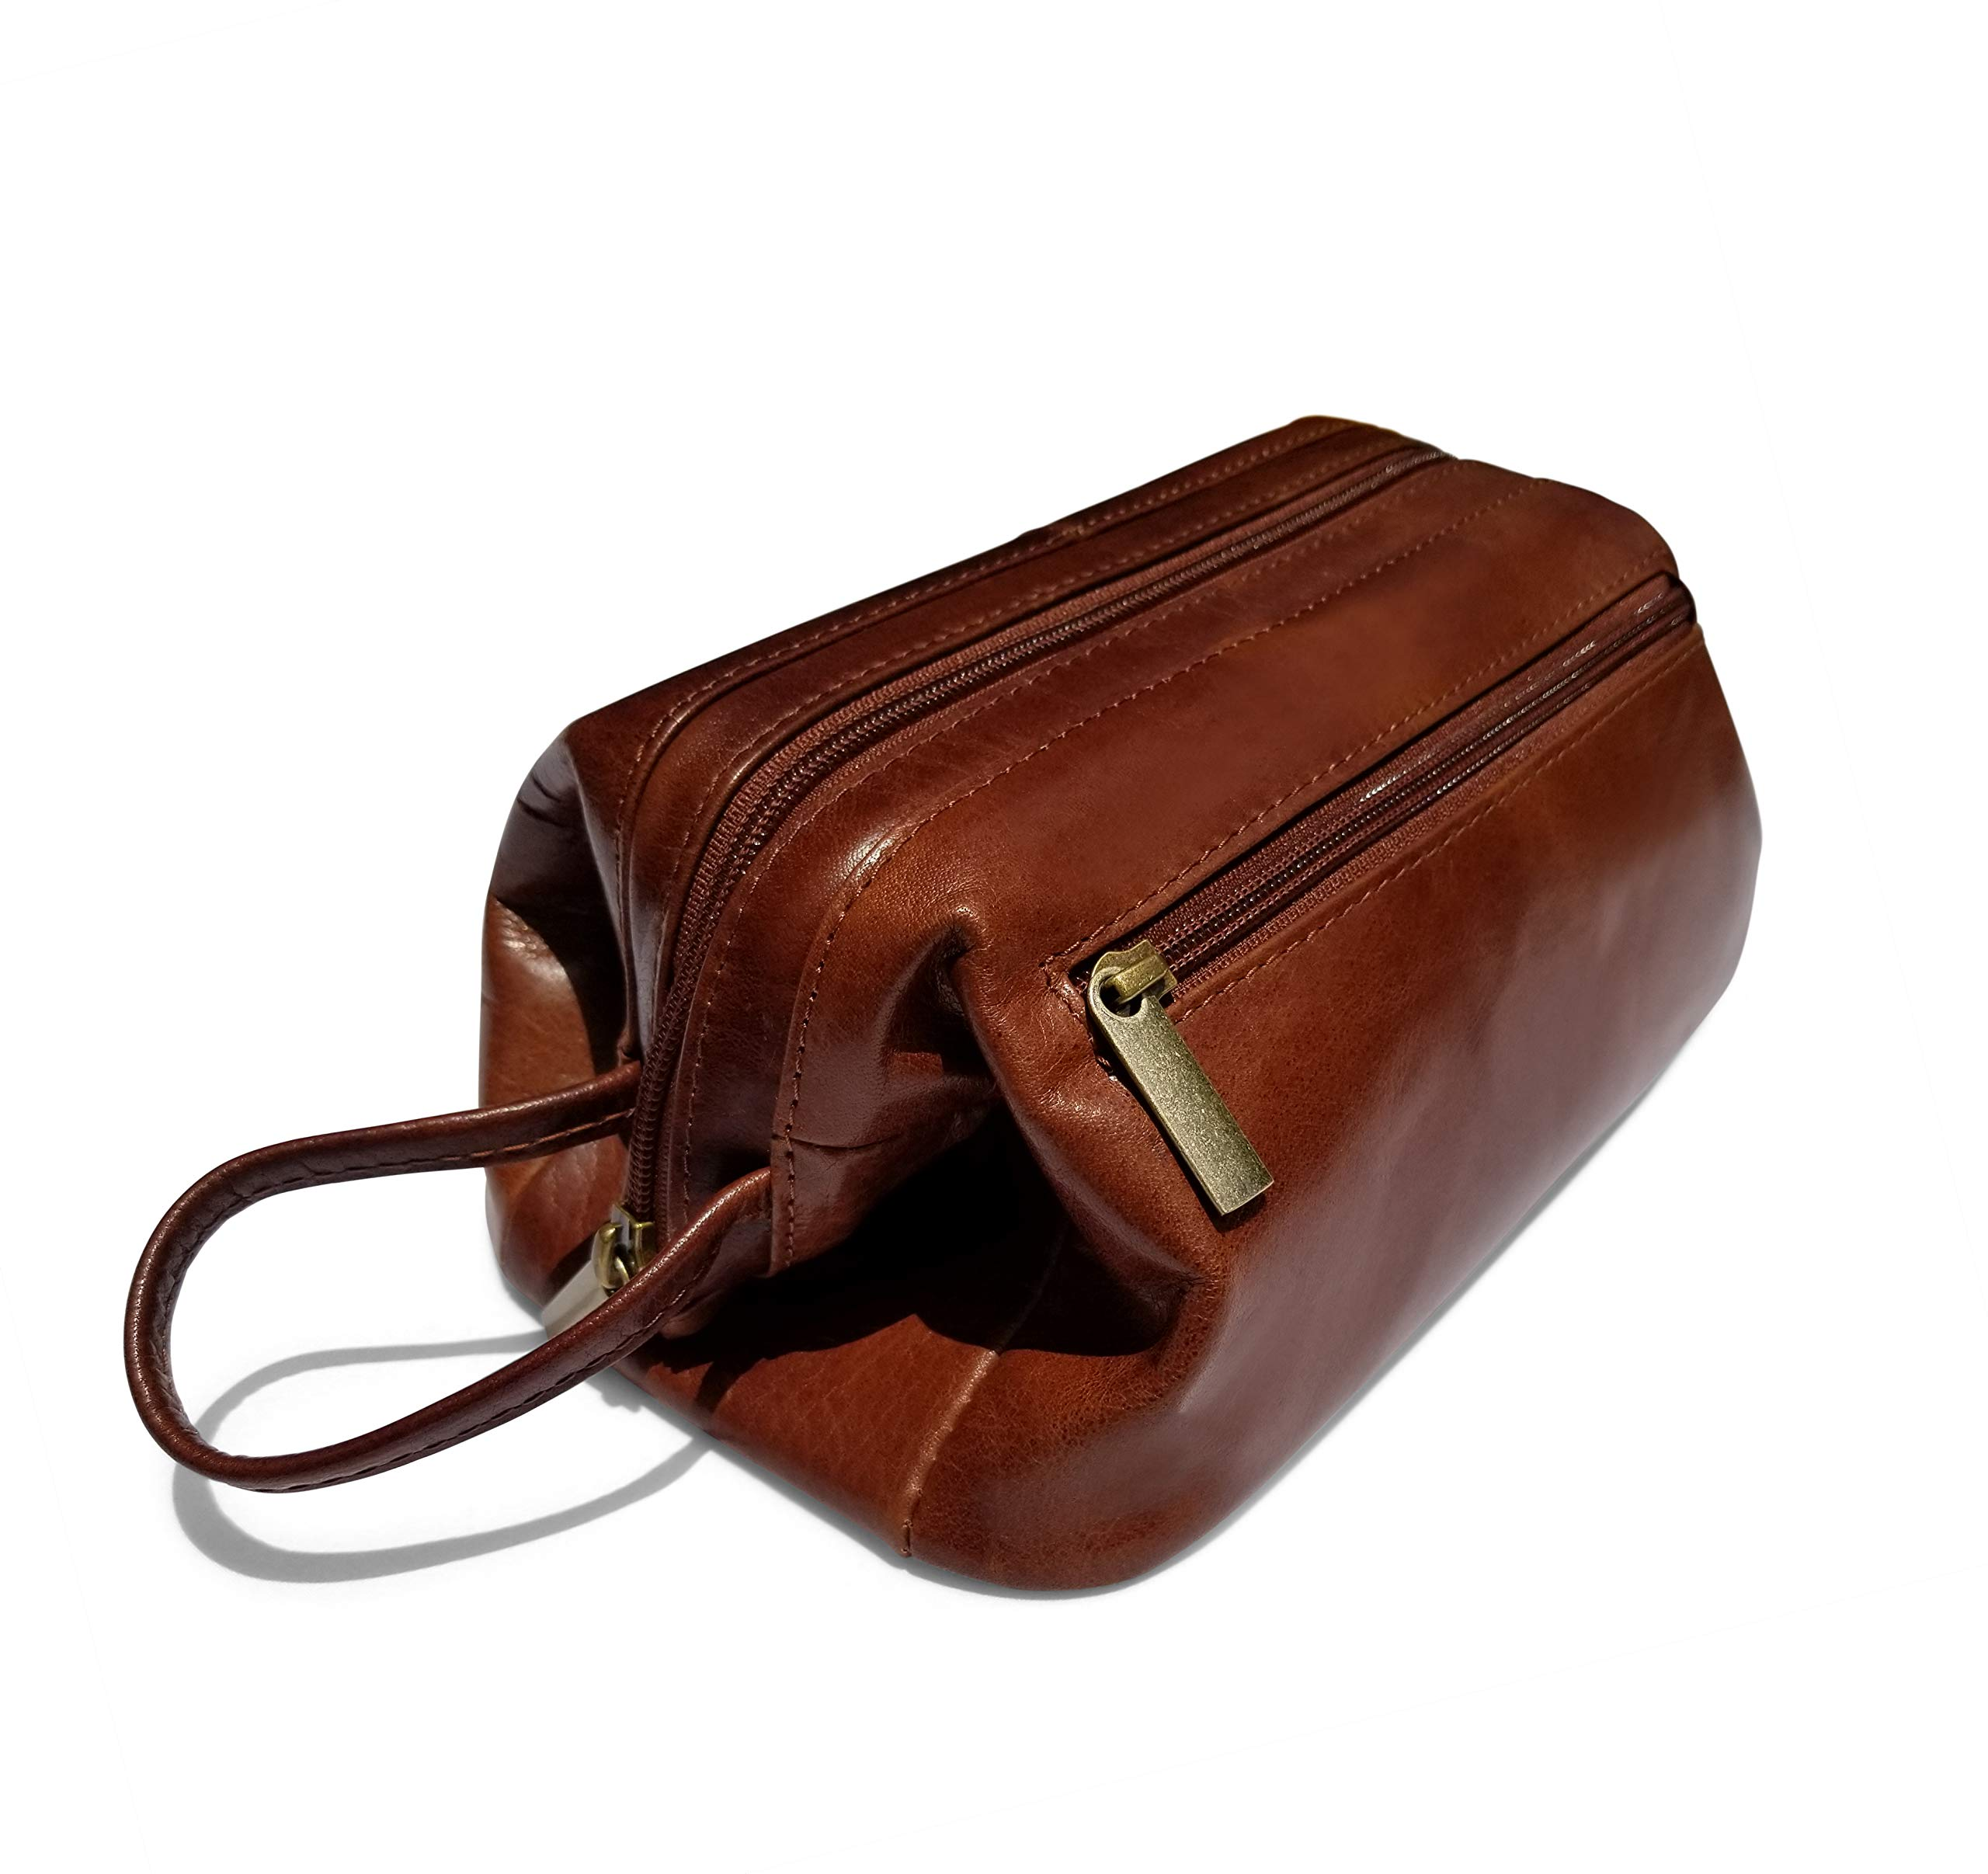 Leather Toiletry Bag Dopp Kit Classic by Gent Supply by Gent Supply